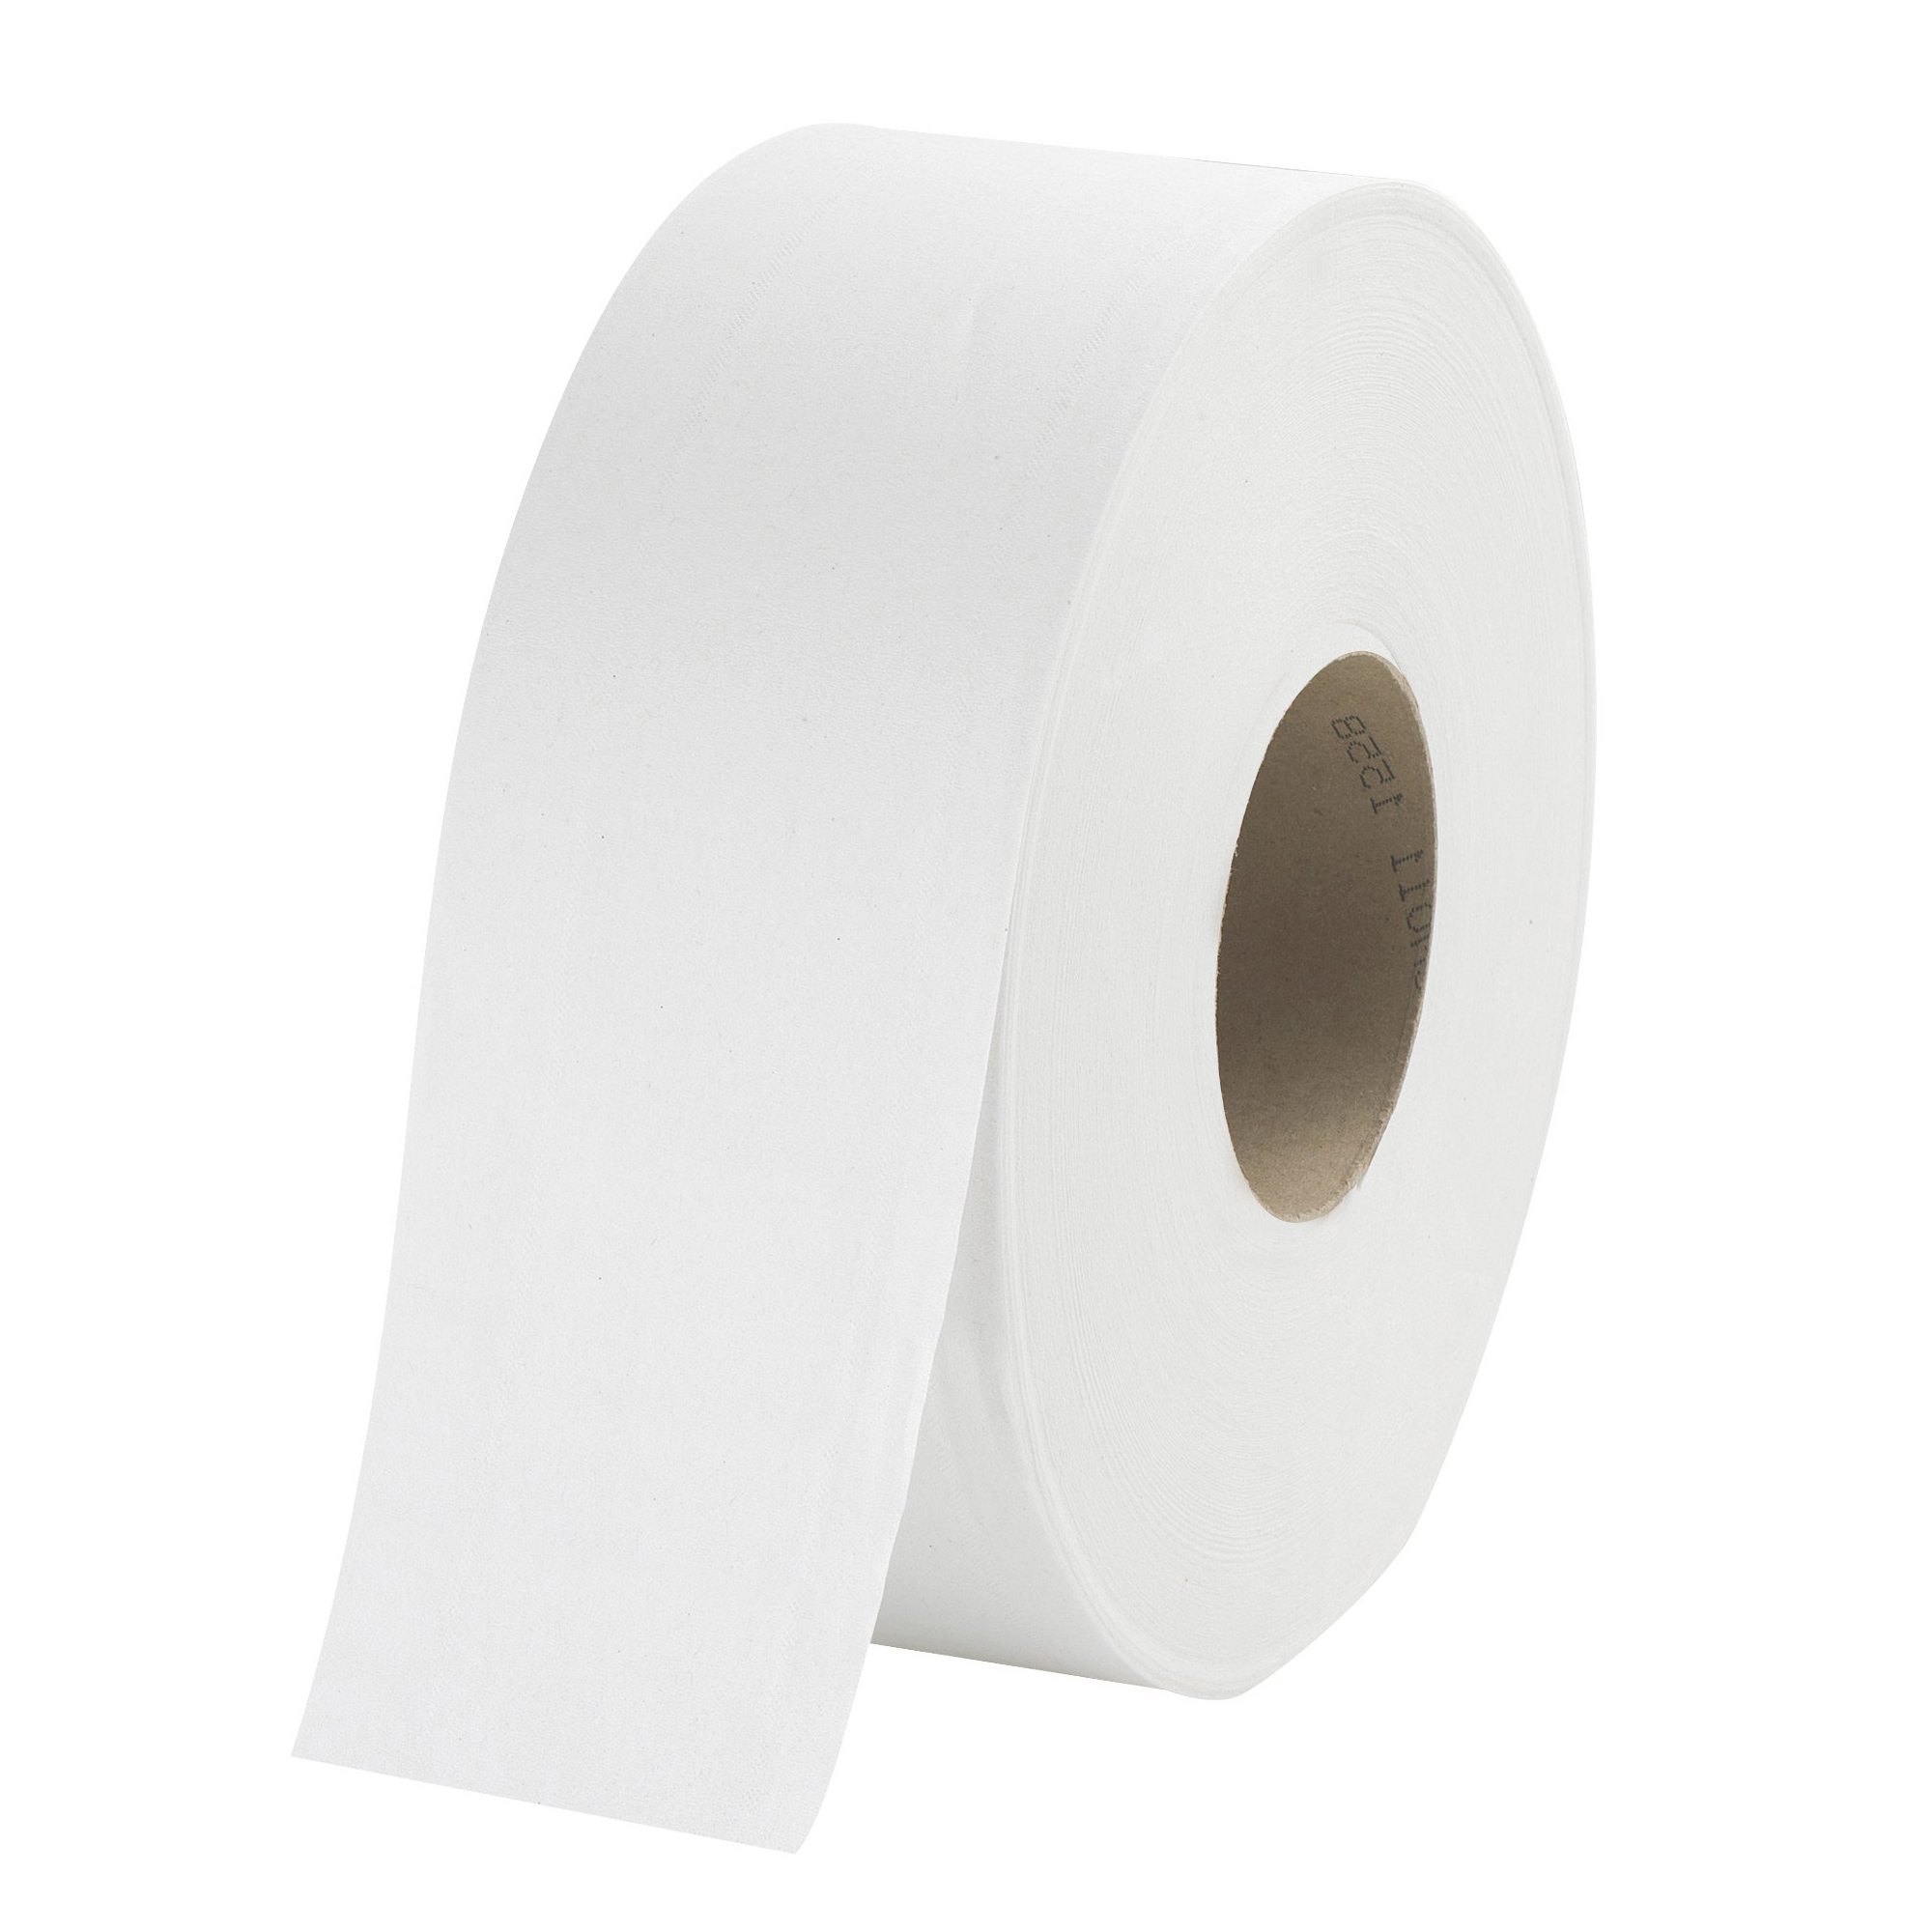 PicturesLogo/JUMBO ROLL TISSUE.jpg